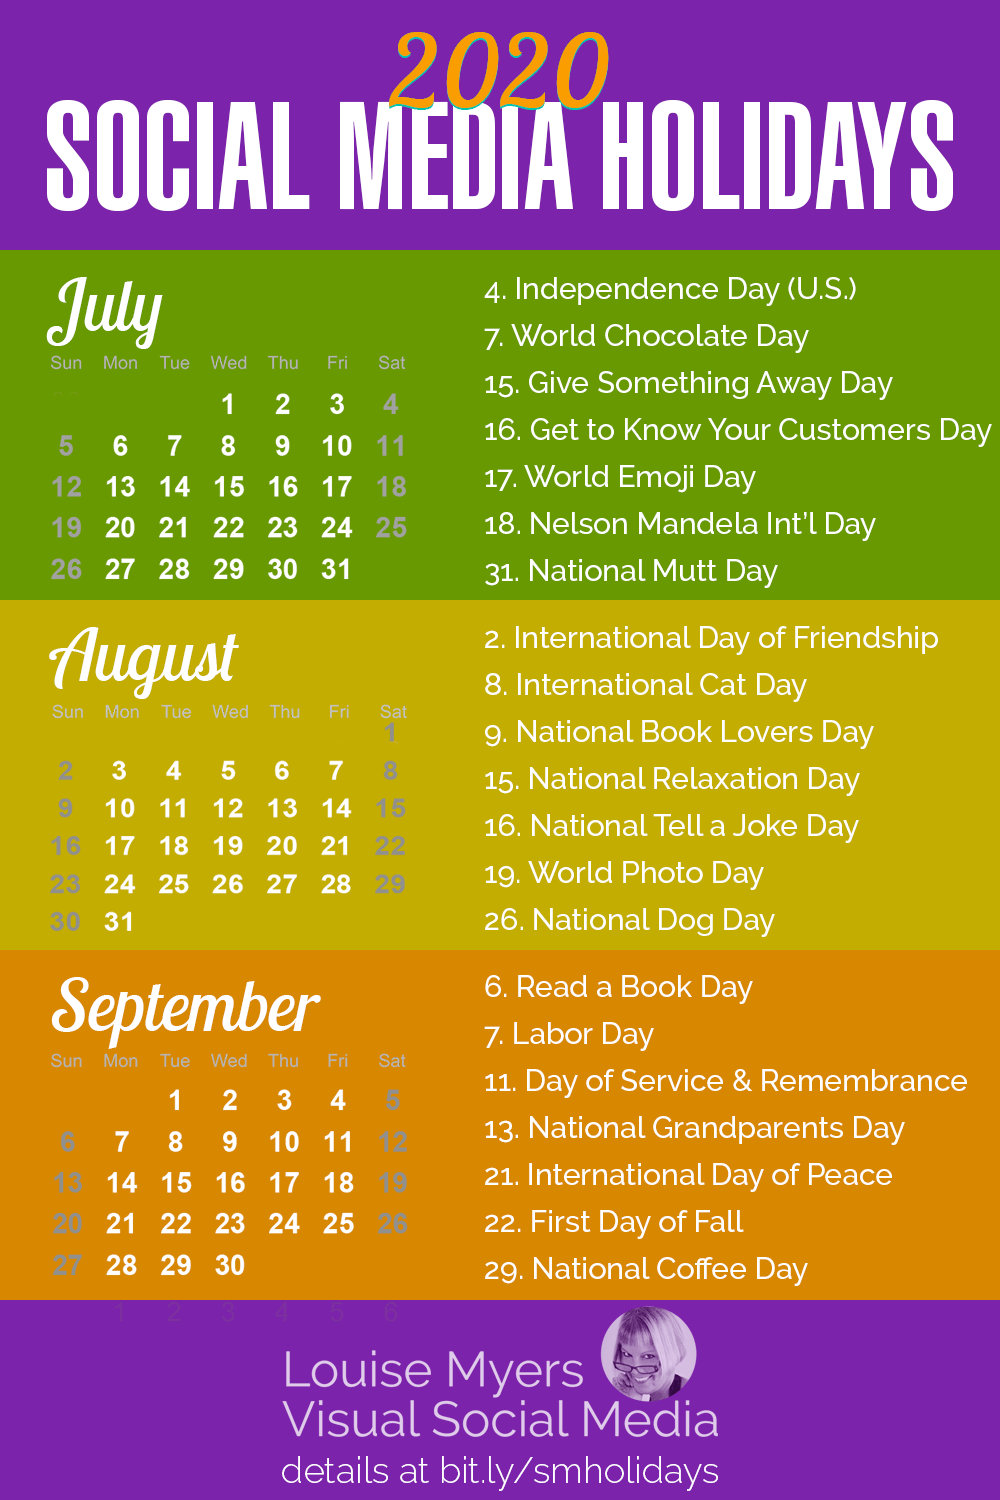 Christmas In August Meme.101 Social Media Holidays You Need 2019 20 Indispensable